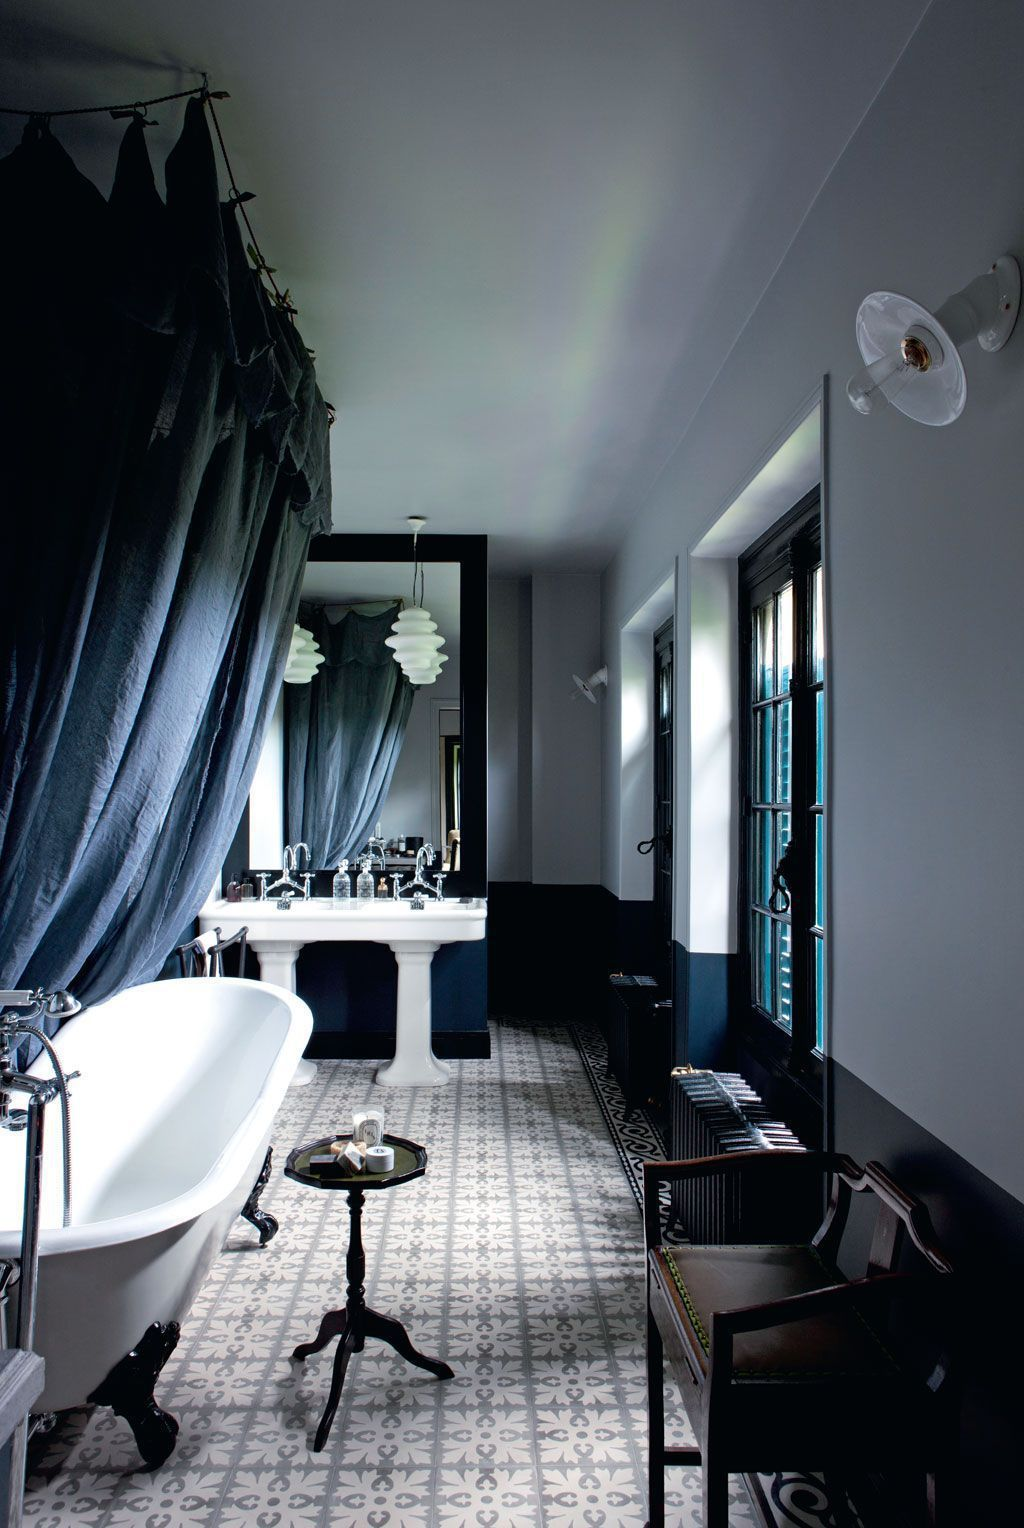 The master bathroom is refined, with teal, black and white and vintage sinks and a bathtub